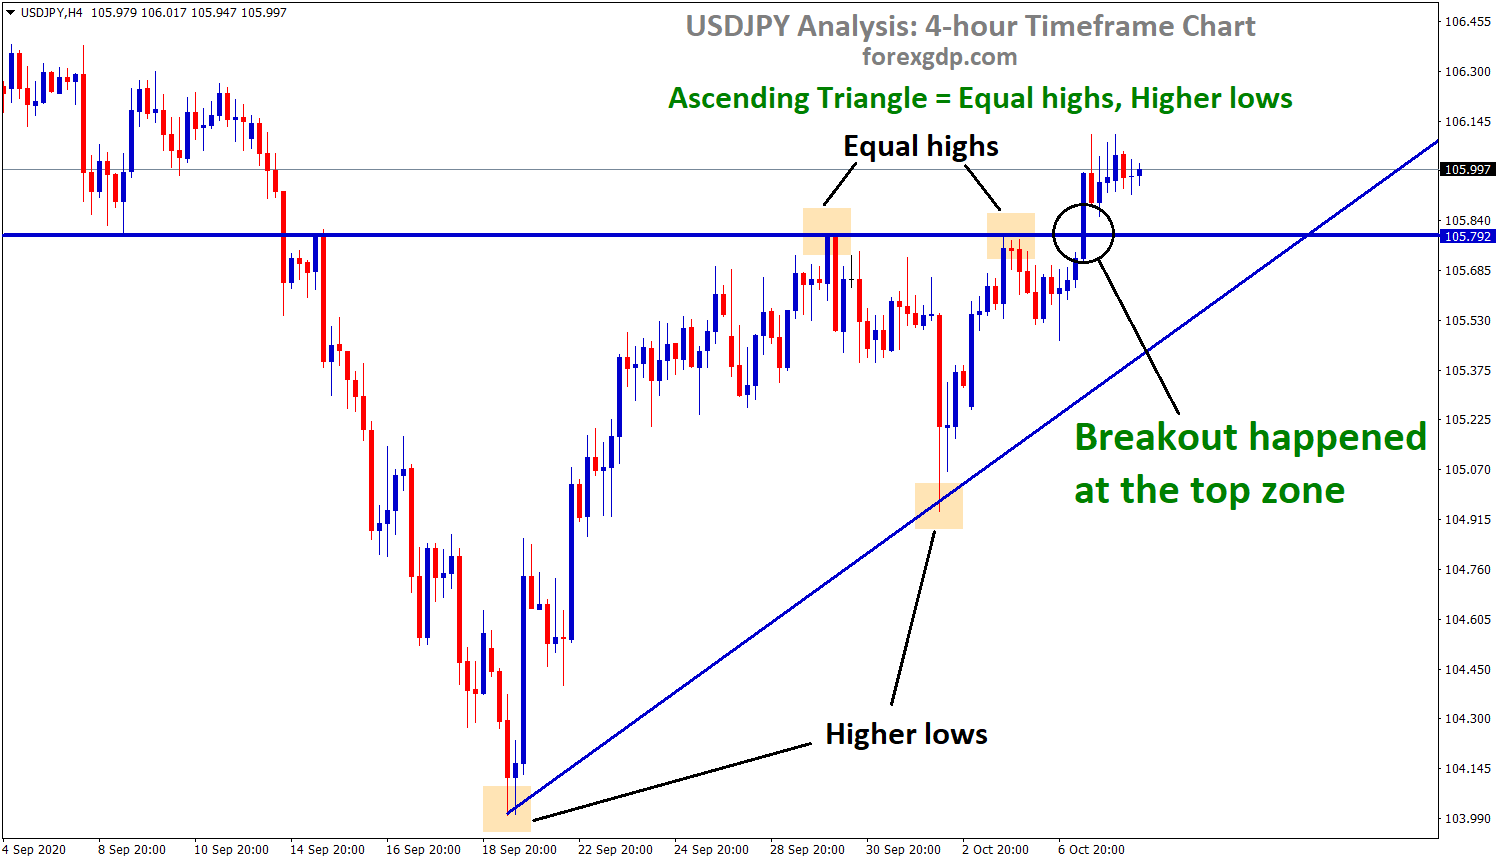 usdjpy broken the top zone of the Ascending Triangle in h4